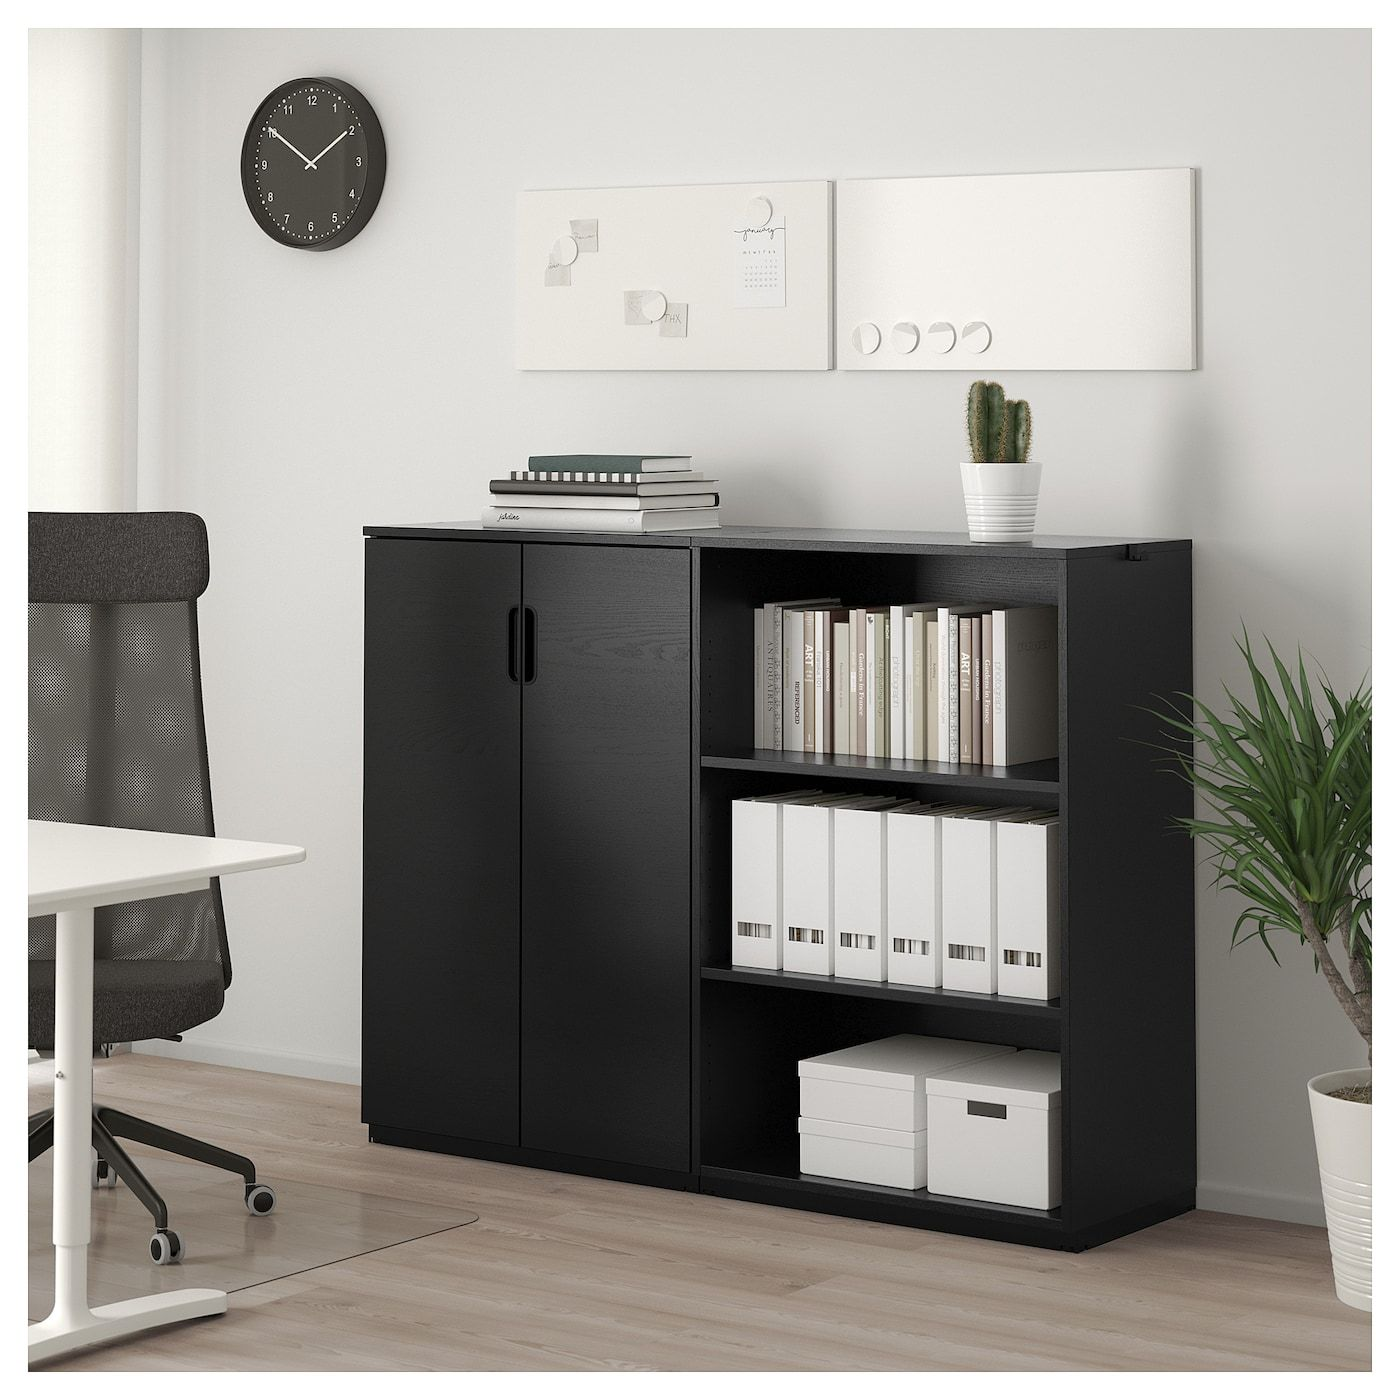 IKEA GALANT Storage combination black stained ash veneer